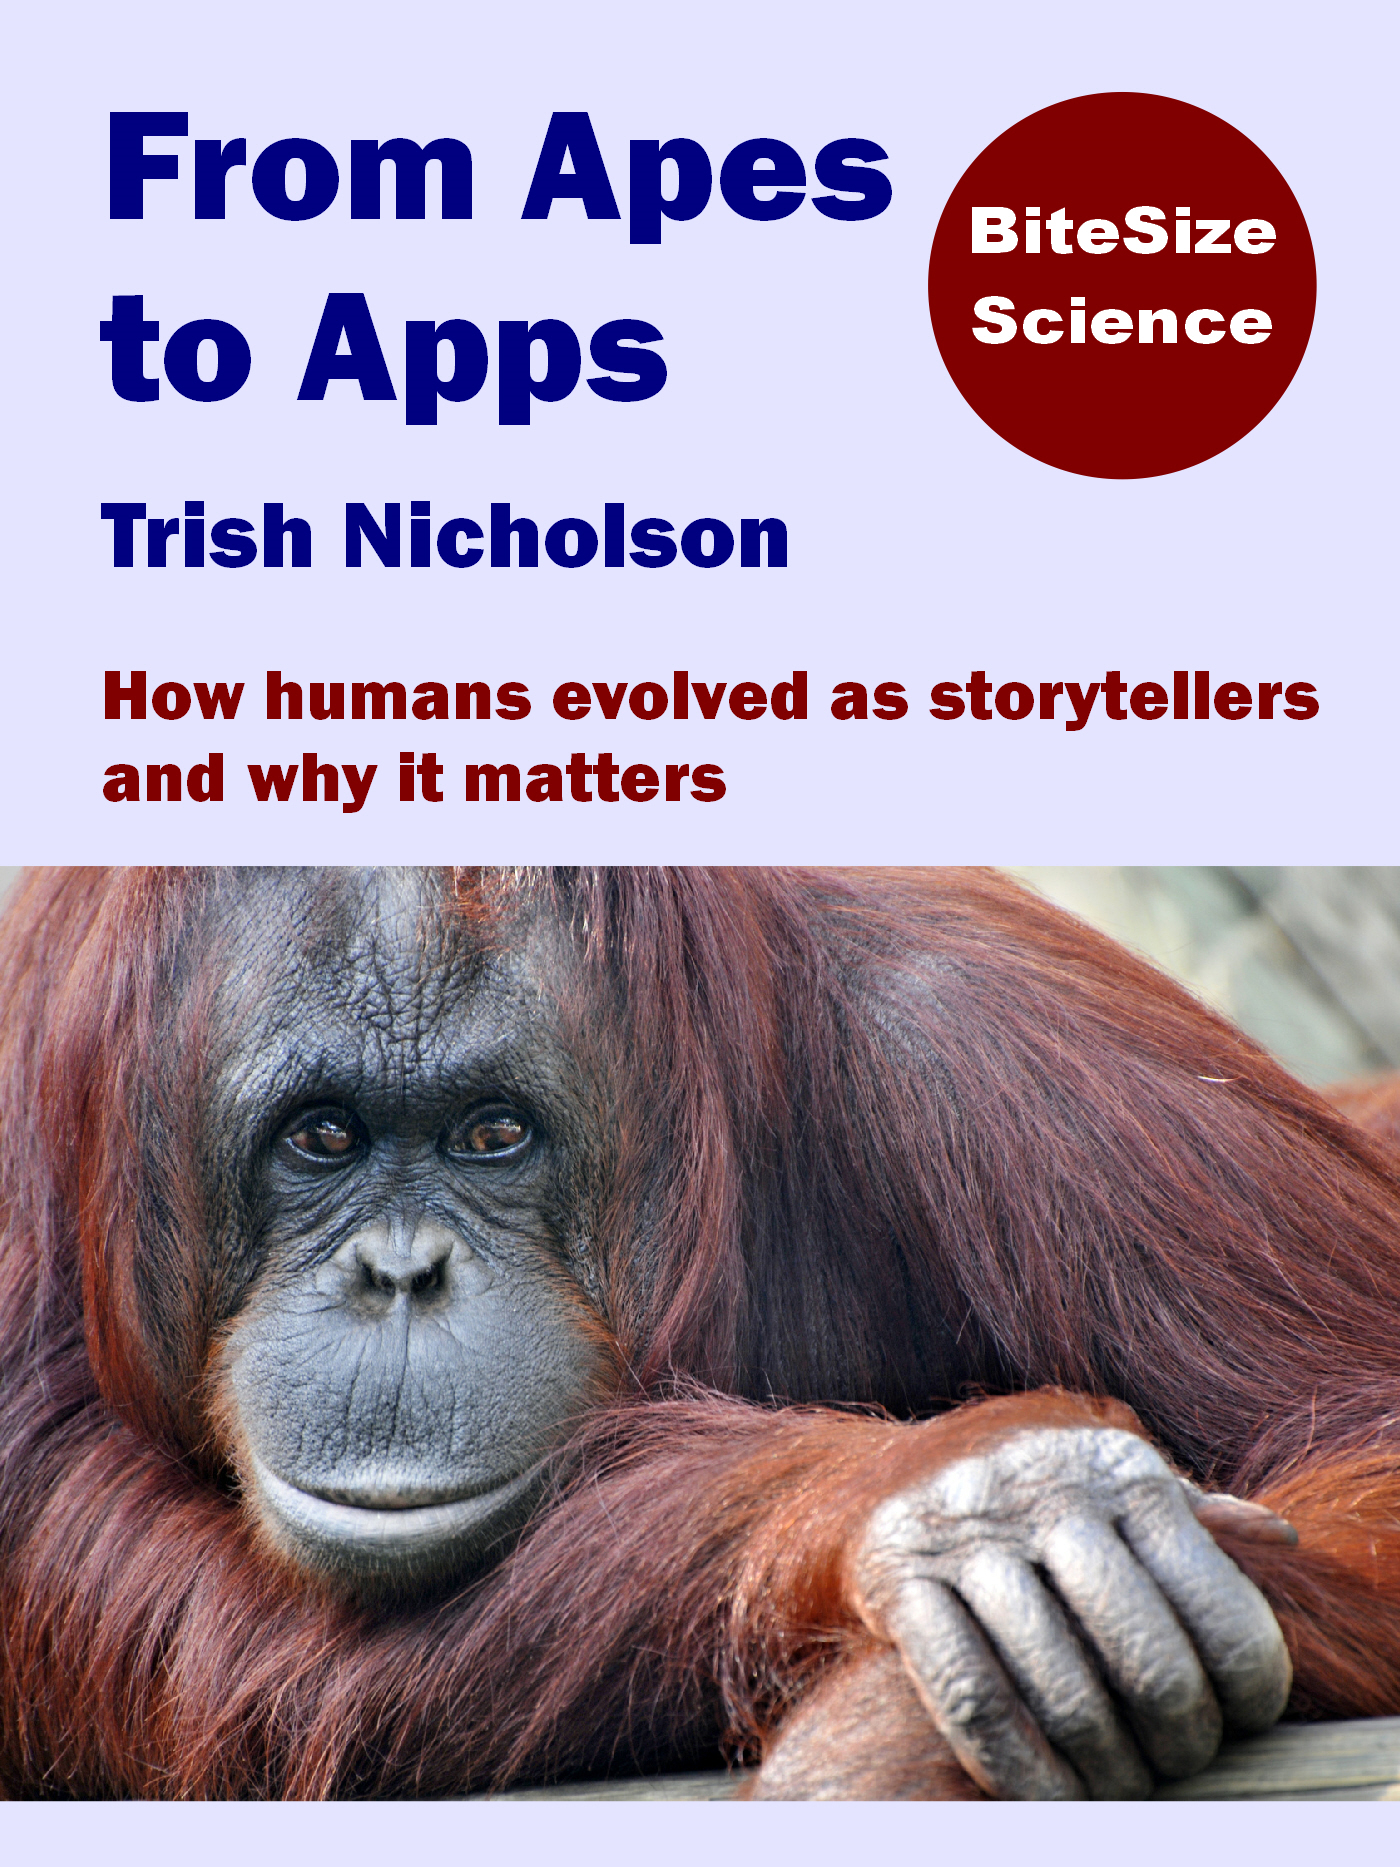 From Apes to Apps: How humans evolved as storytellers and why it matters